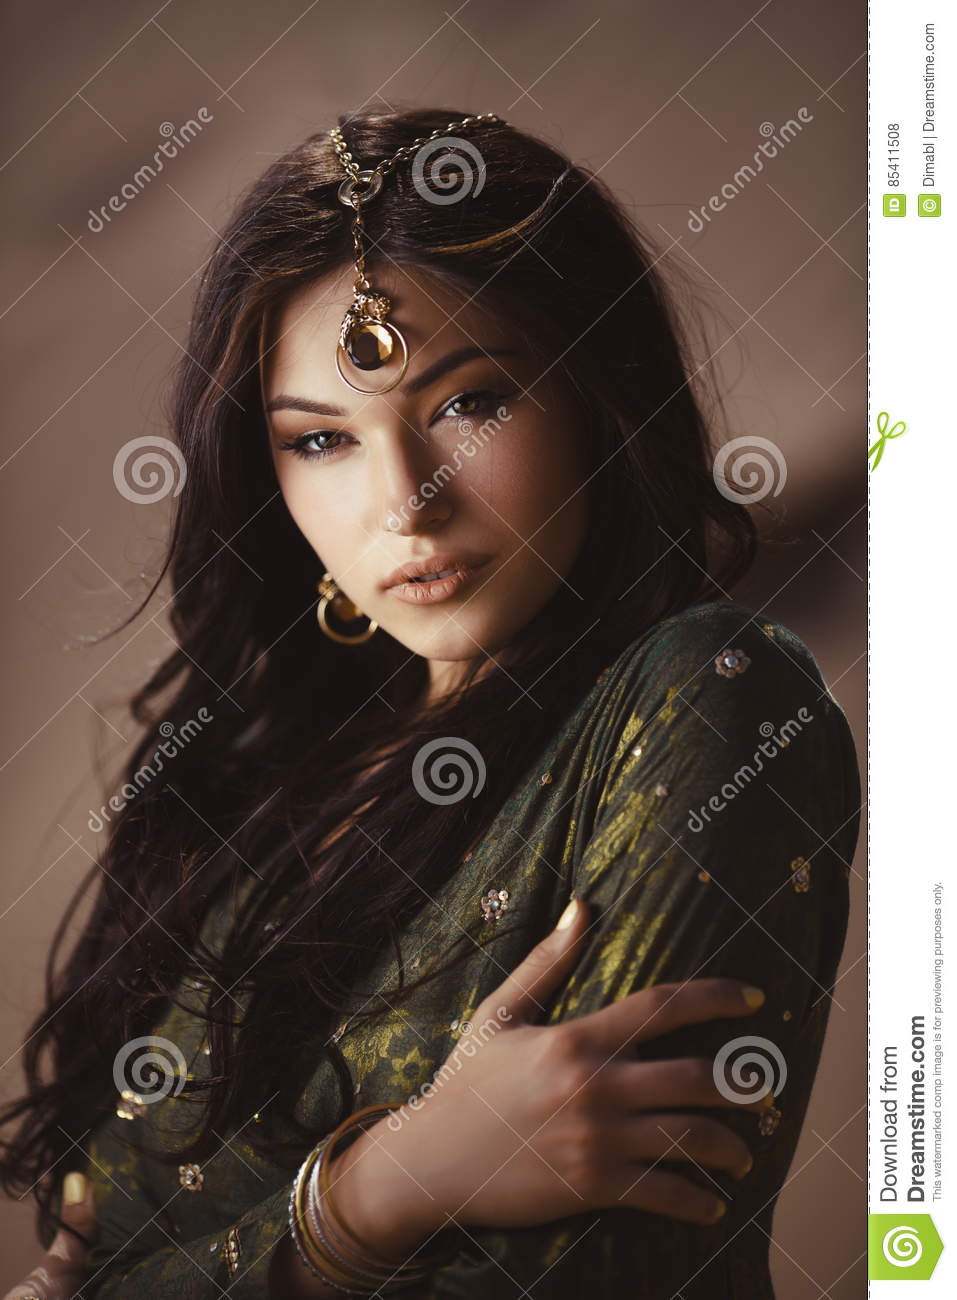 Beautiful woman with fashion make-up and hairstyle like Egyptian princess Cleopatra outdoors against desert